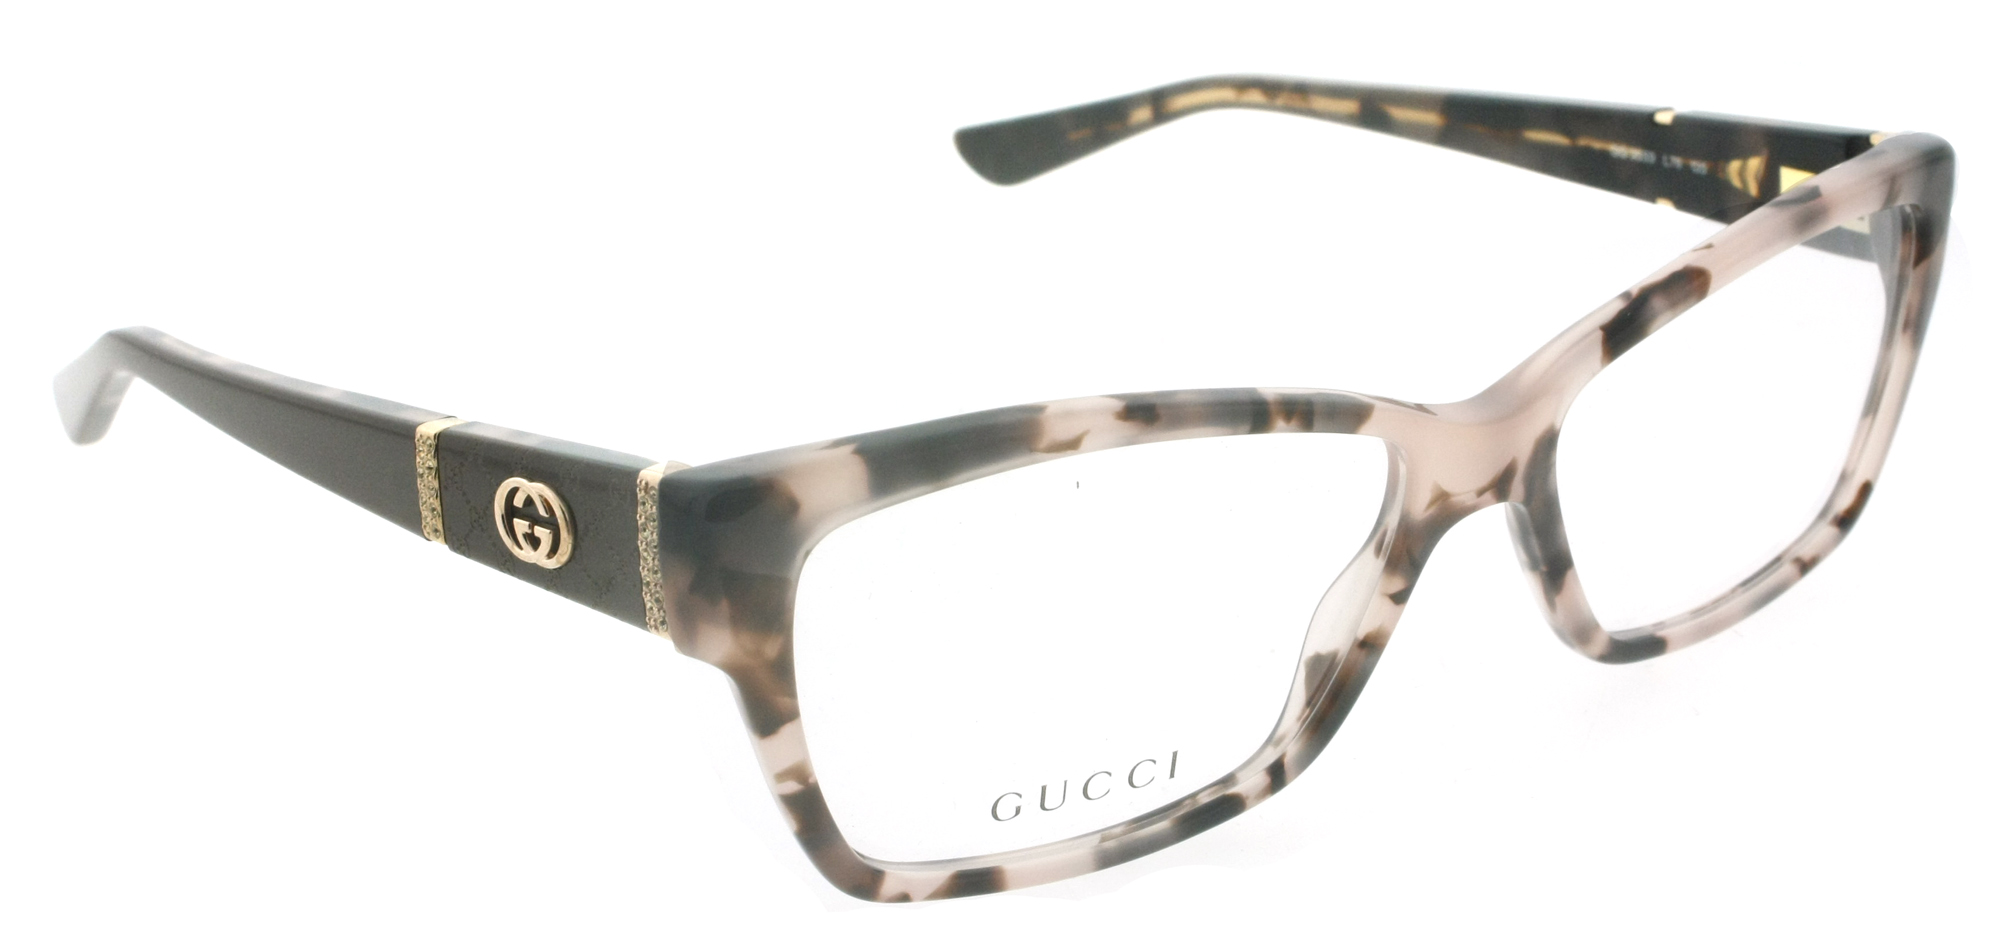 Gucci Eyeglass Frame 3559 : Gucci GG 3559 L76 Havana Rose/Brown Womens Rectangular ...